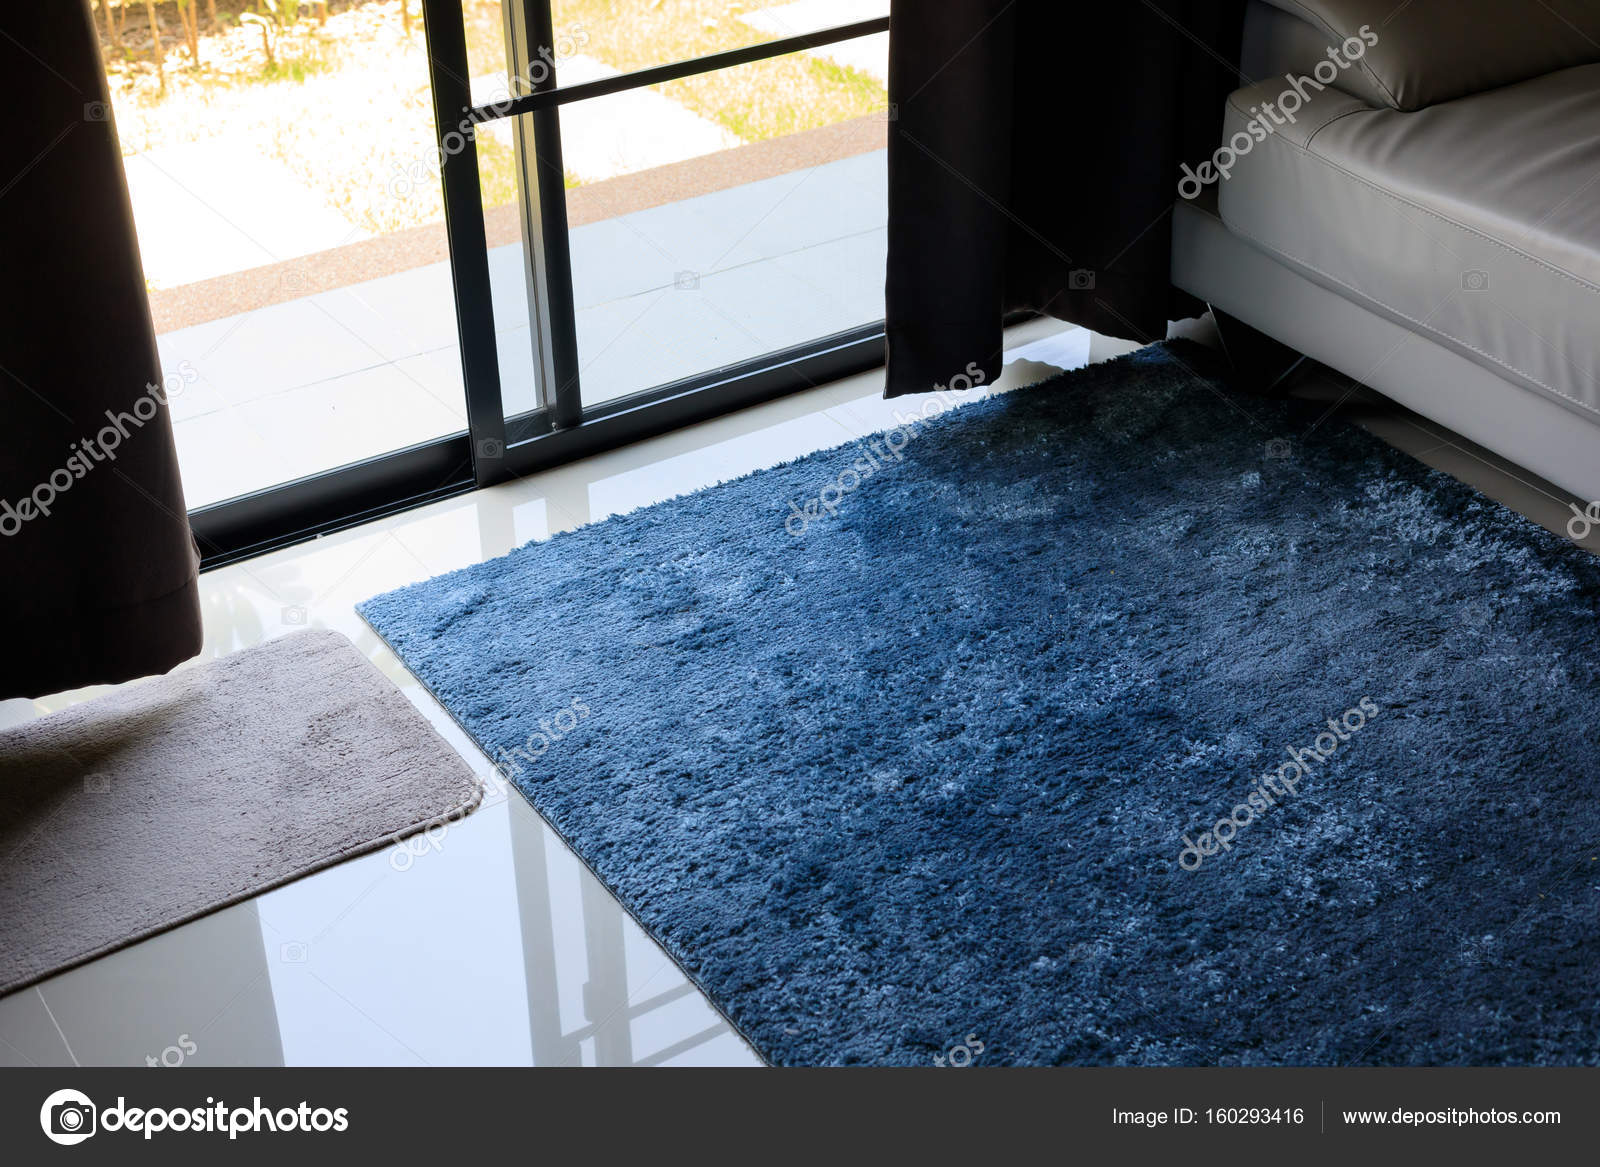 Blue Carpet Softness Texture Decoration Floor Interior Modern House Photo By Sutichak